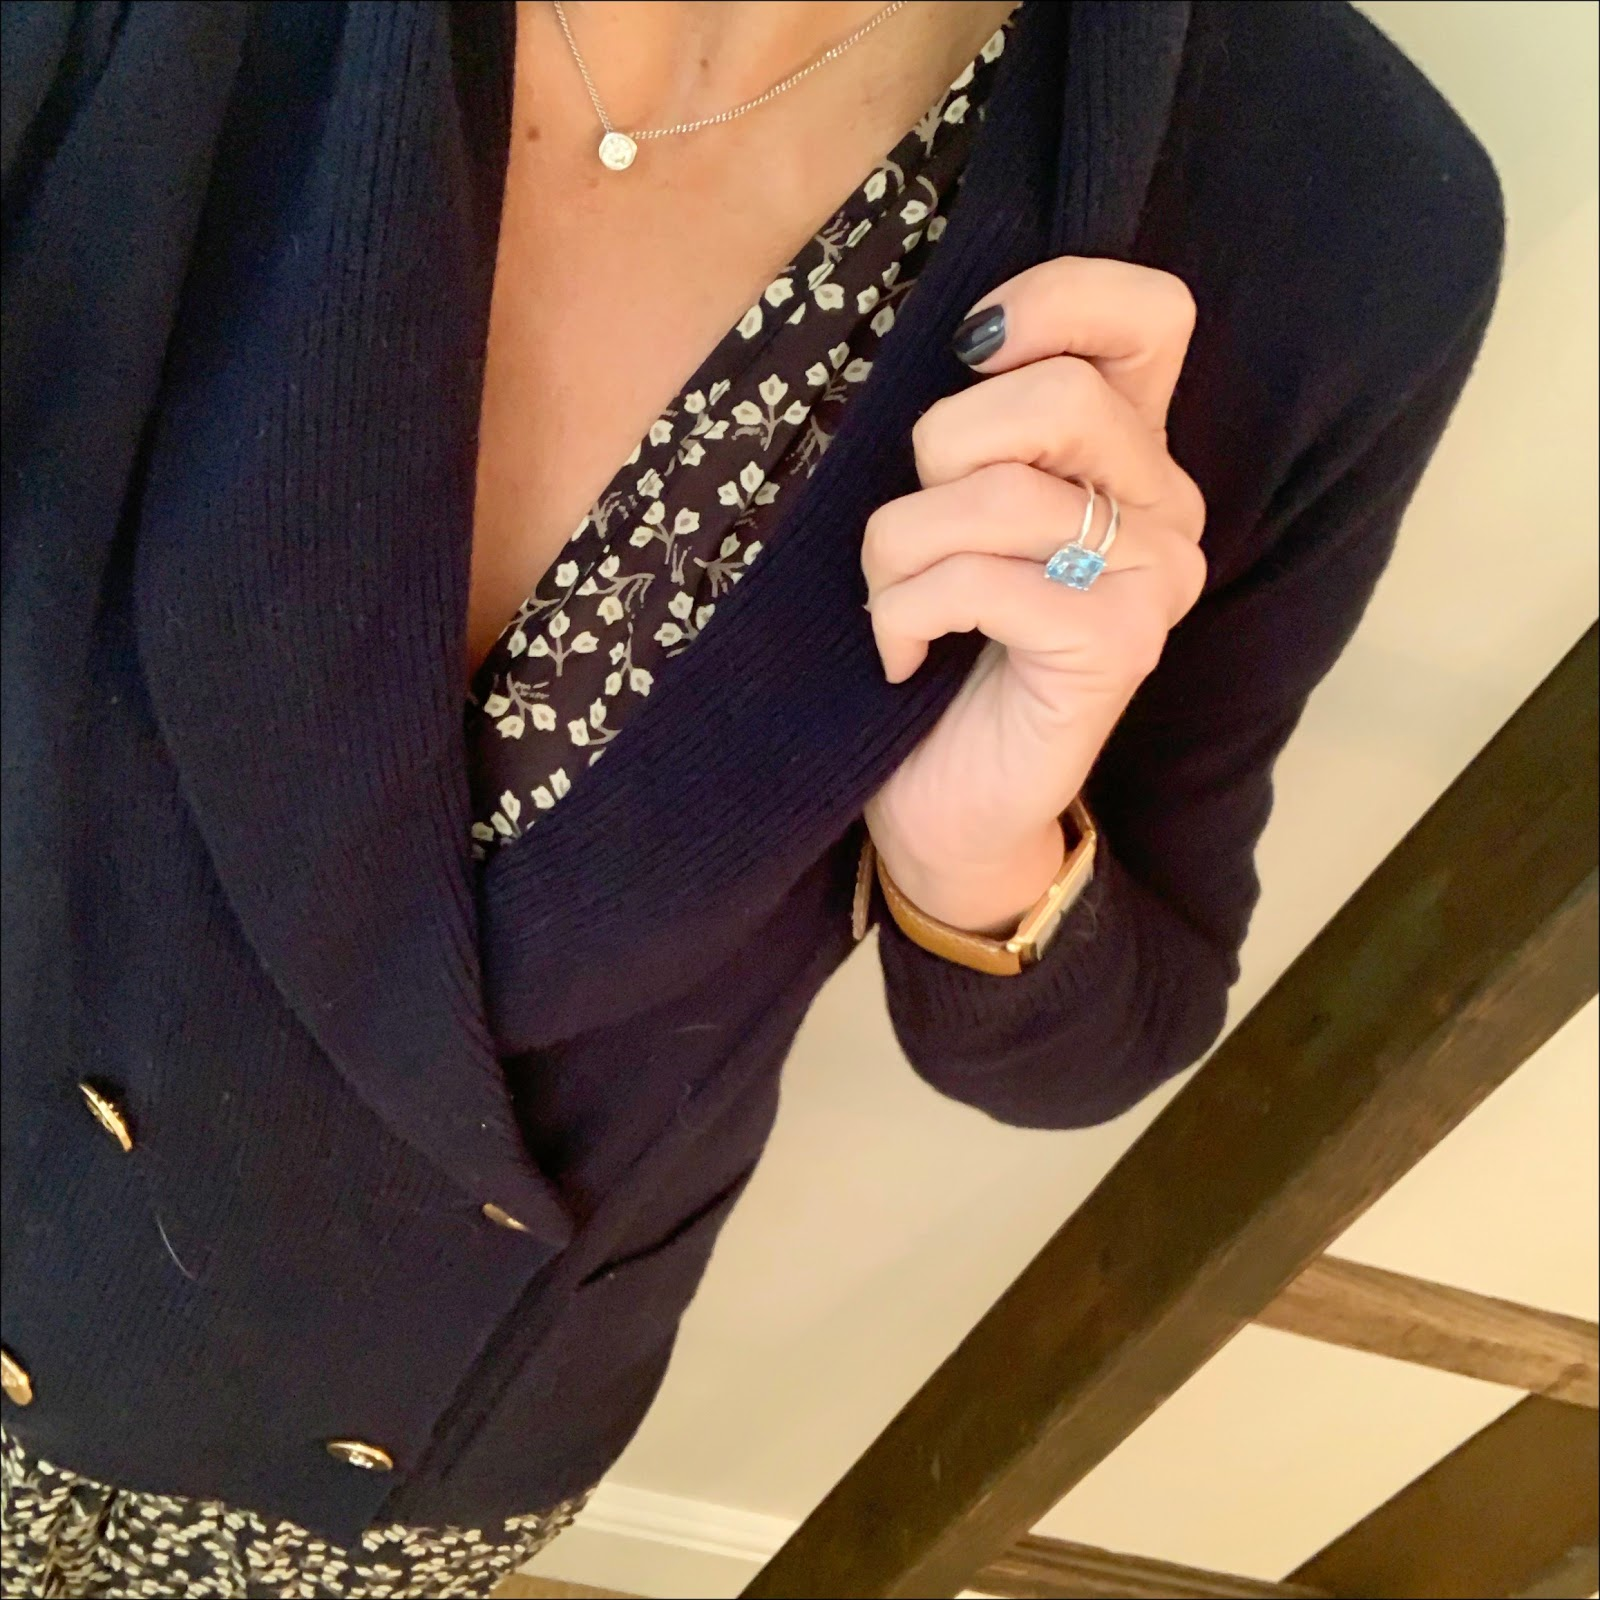 my midlife fashion, jones bootmaker ella leather loafers, ralph lauren double breasted knitted jacket, ganni floral maxi dress